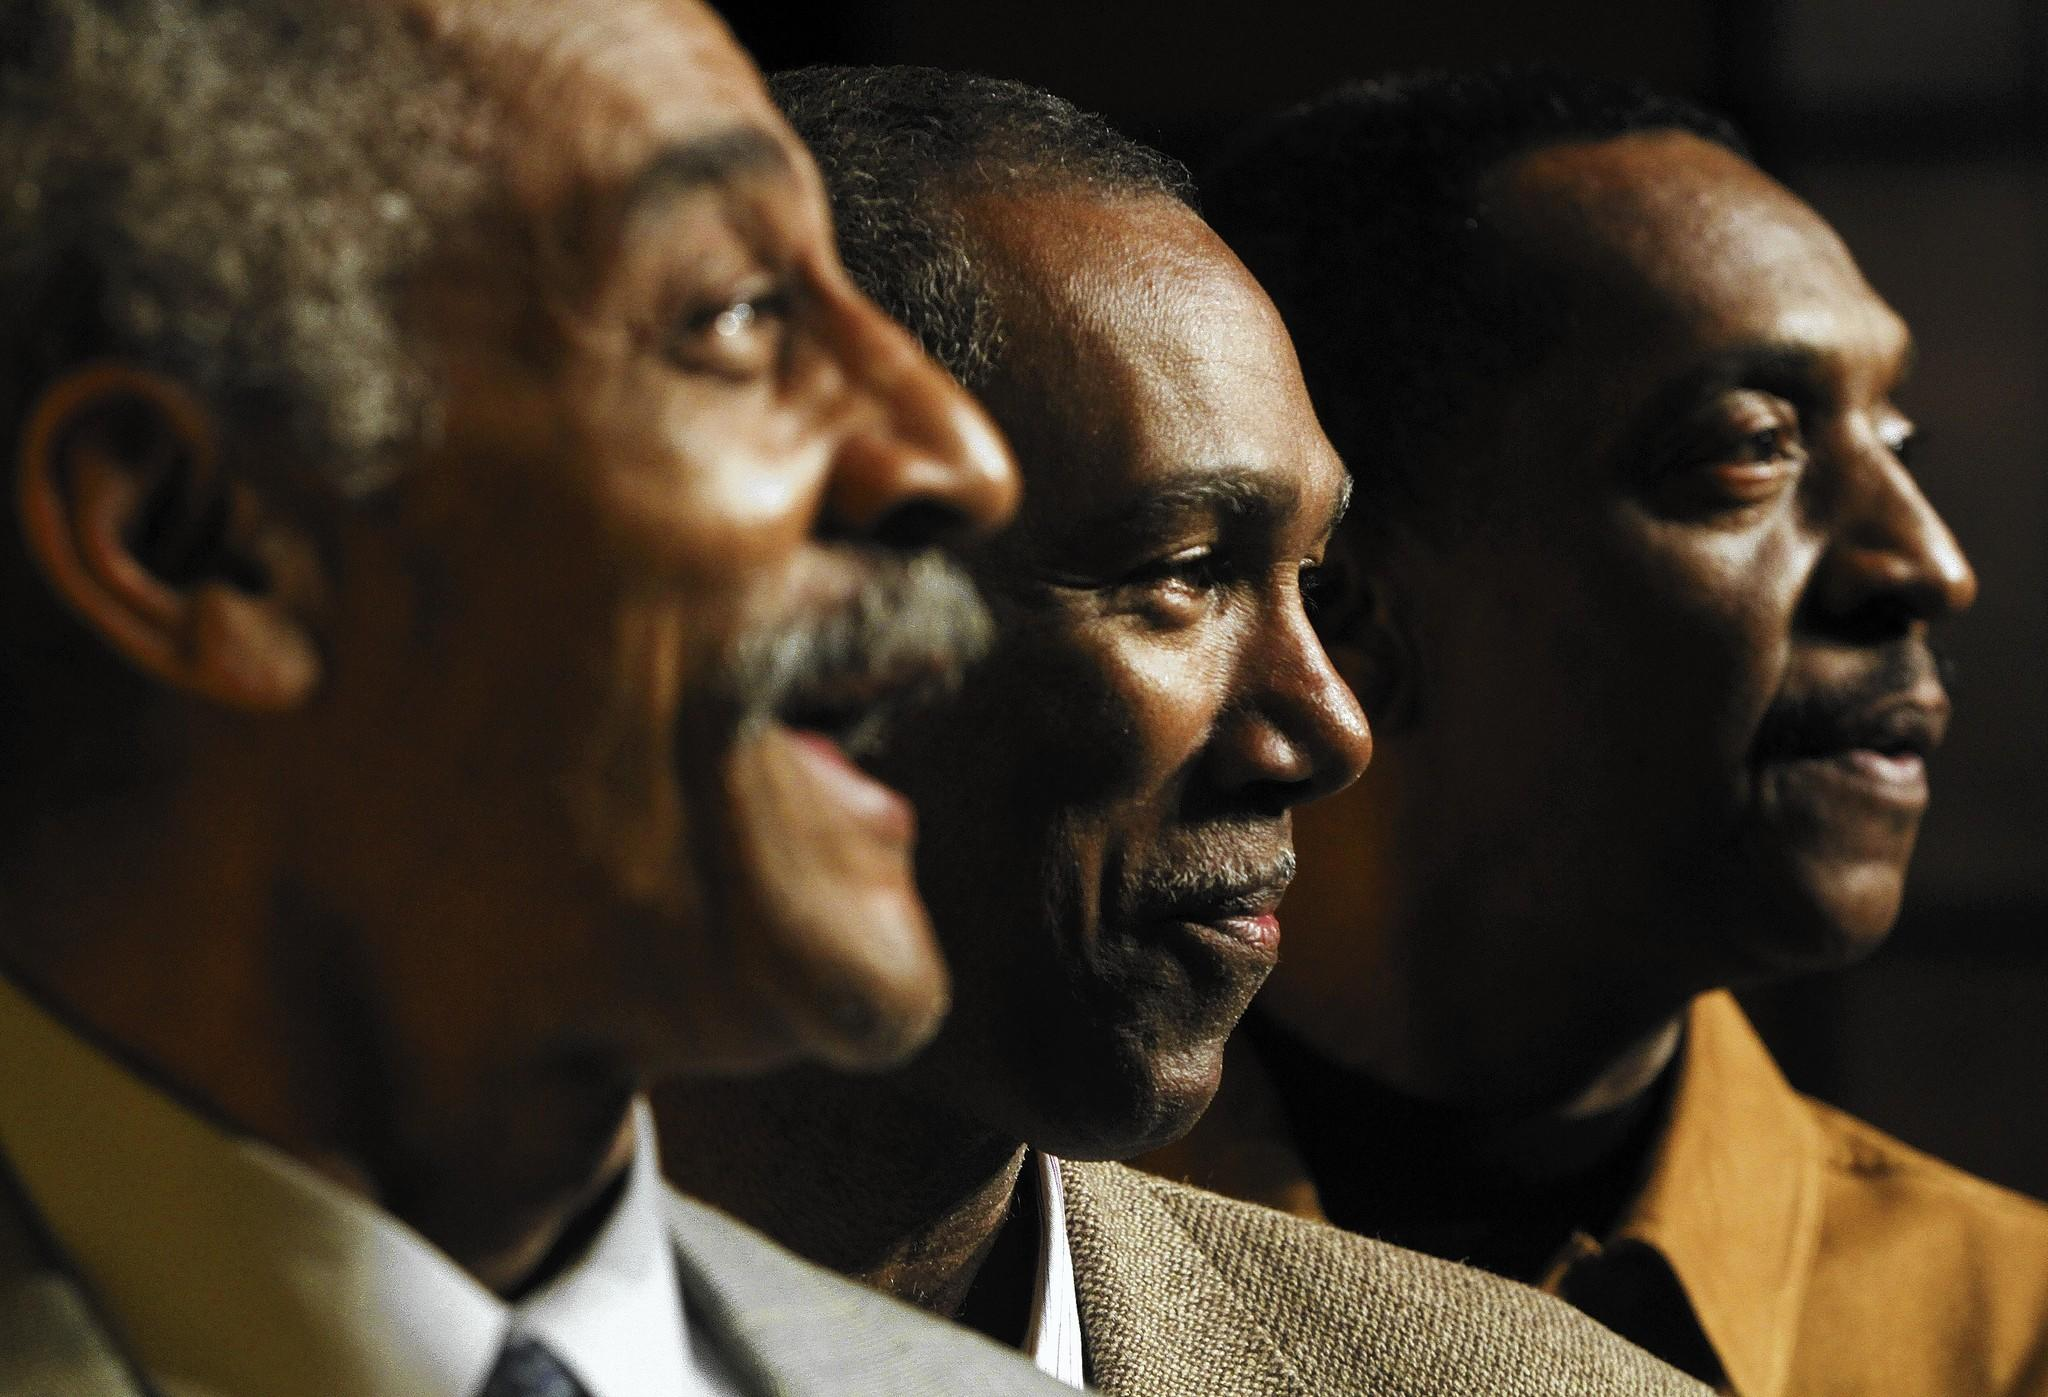 The Unifics, Tom Fauntleroy, Garrett Hall and Charlie Lockhart, pose for a portrait in the Ella Fitzgerald Theater at the Downing-Gross Cultural Arts Center in Newport News. The members of the vocal harmony group say they will continue to make music in tribute to their late friend and colleague, Al Johnson.